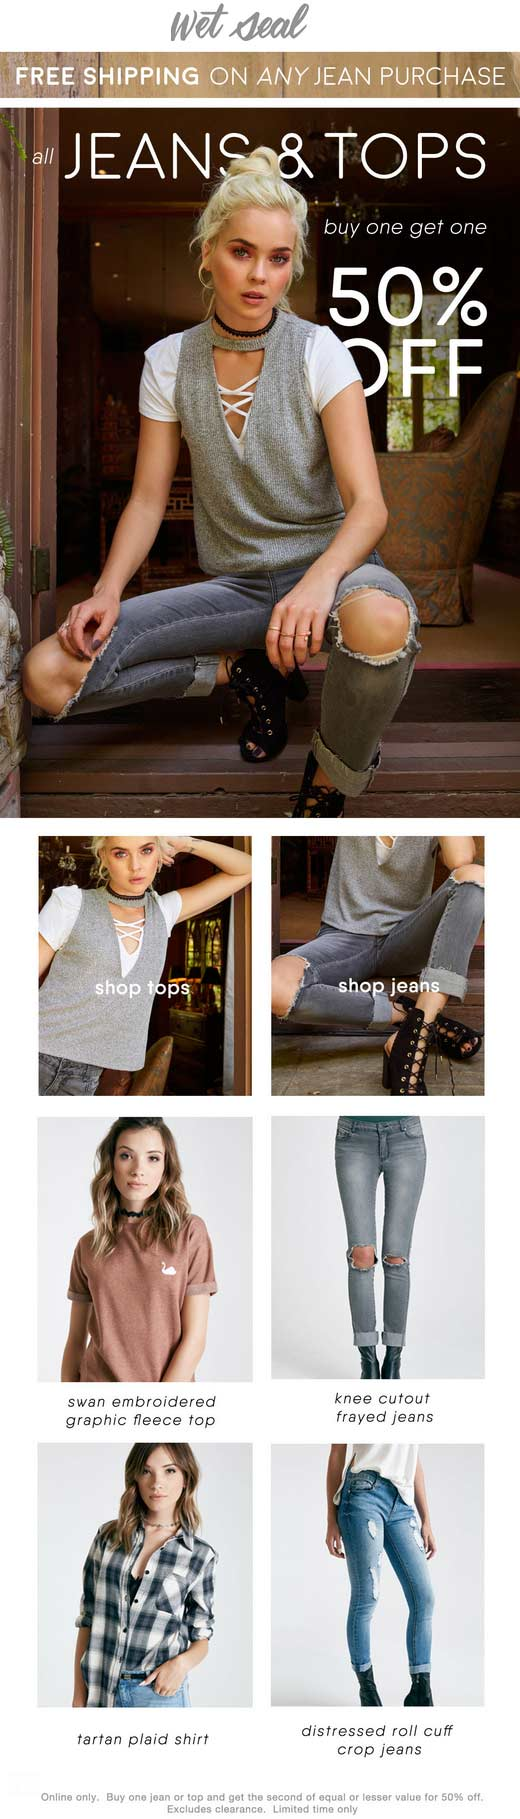 Wet Seal Coupon September 2017 Second jeans or tops 50% off online at Wet Seal